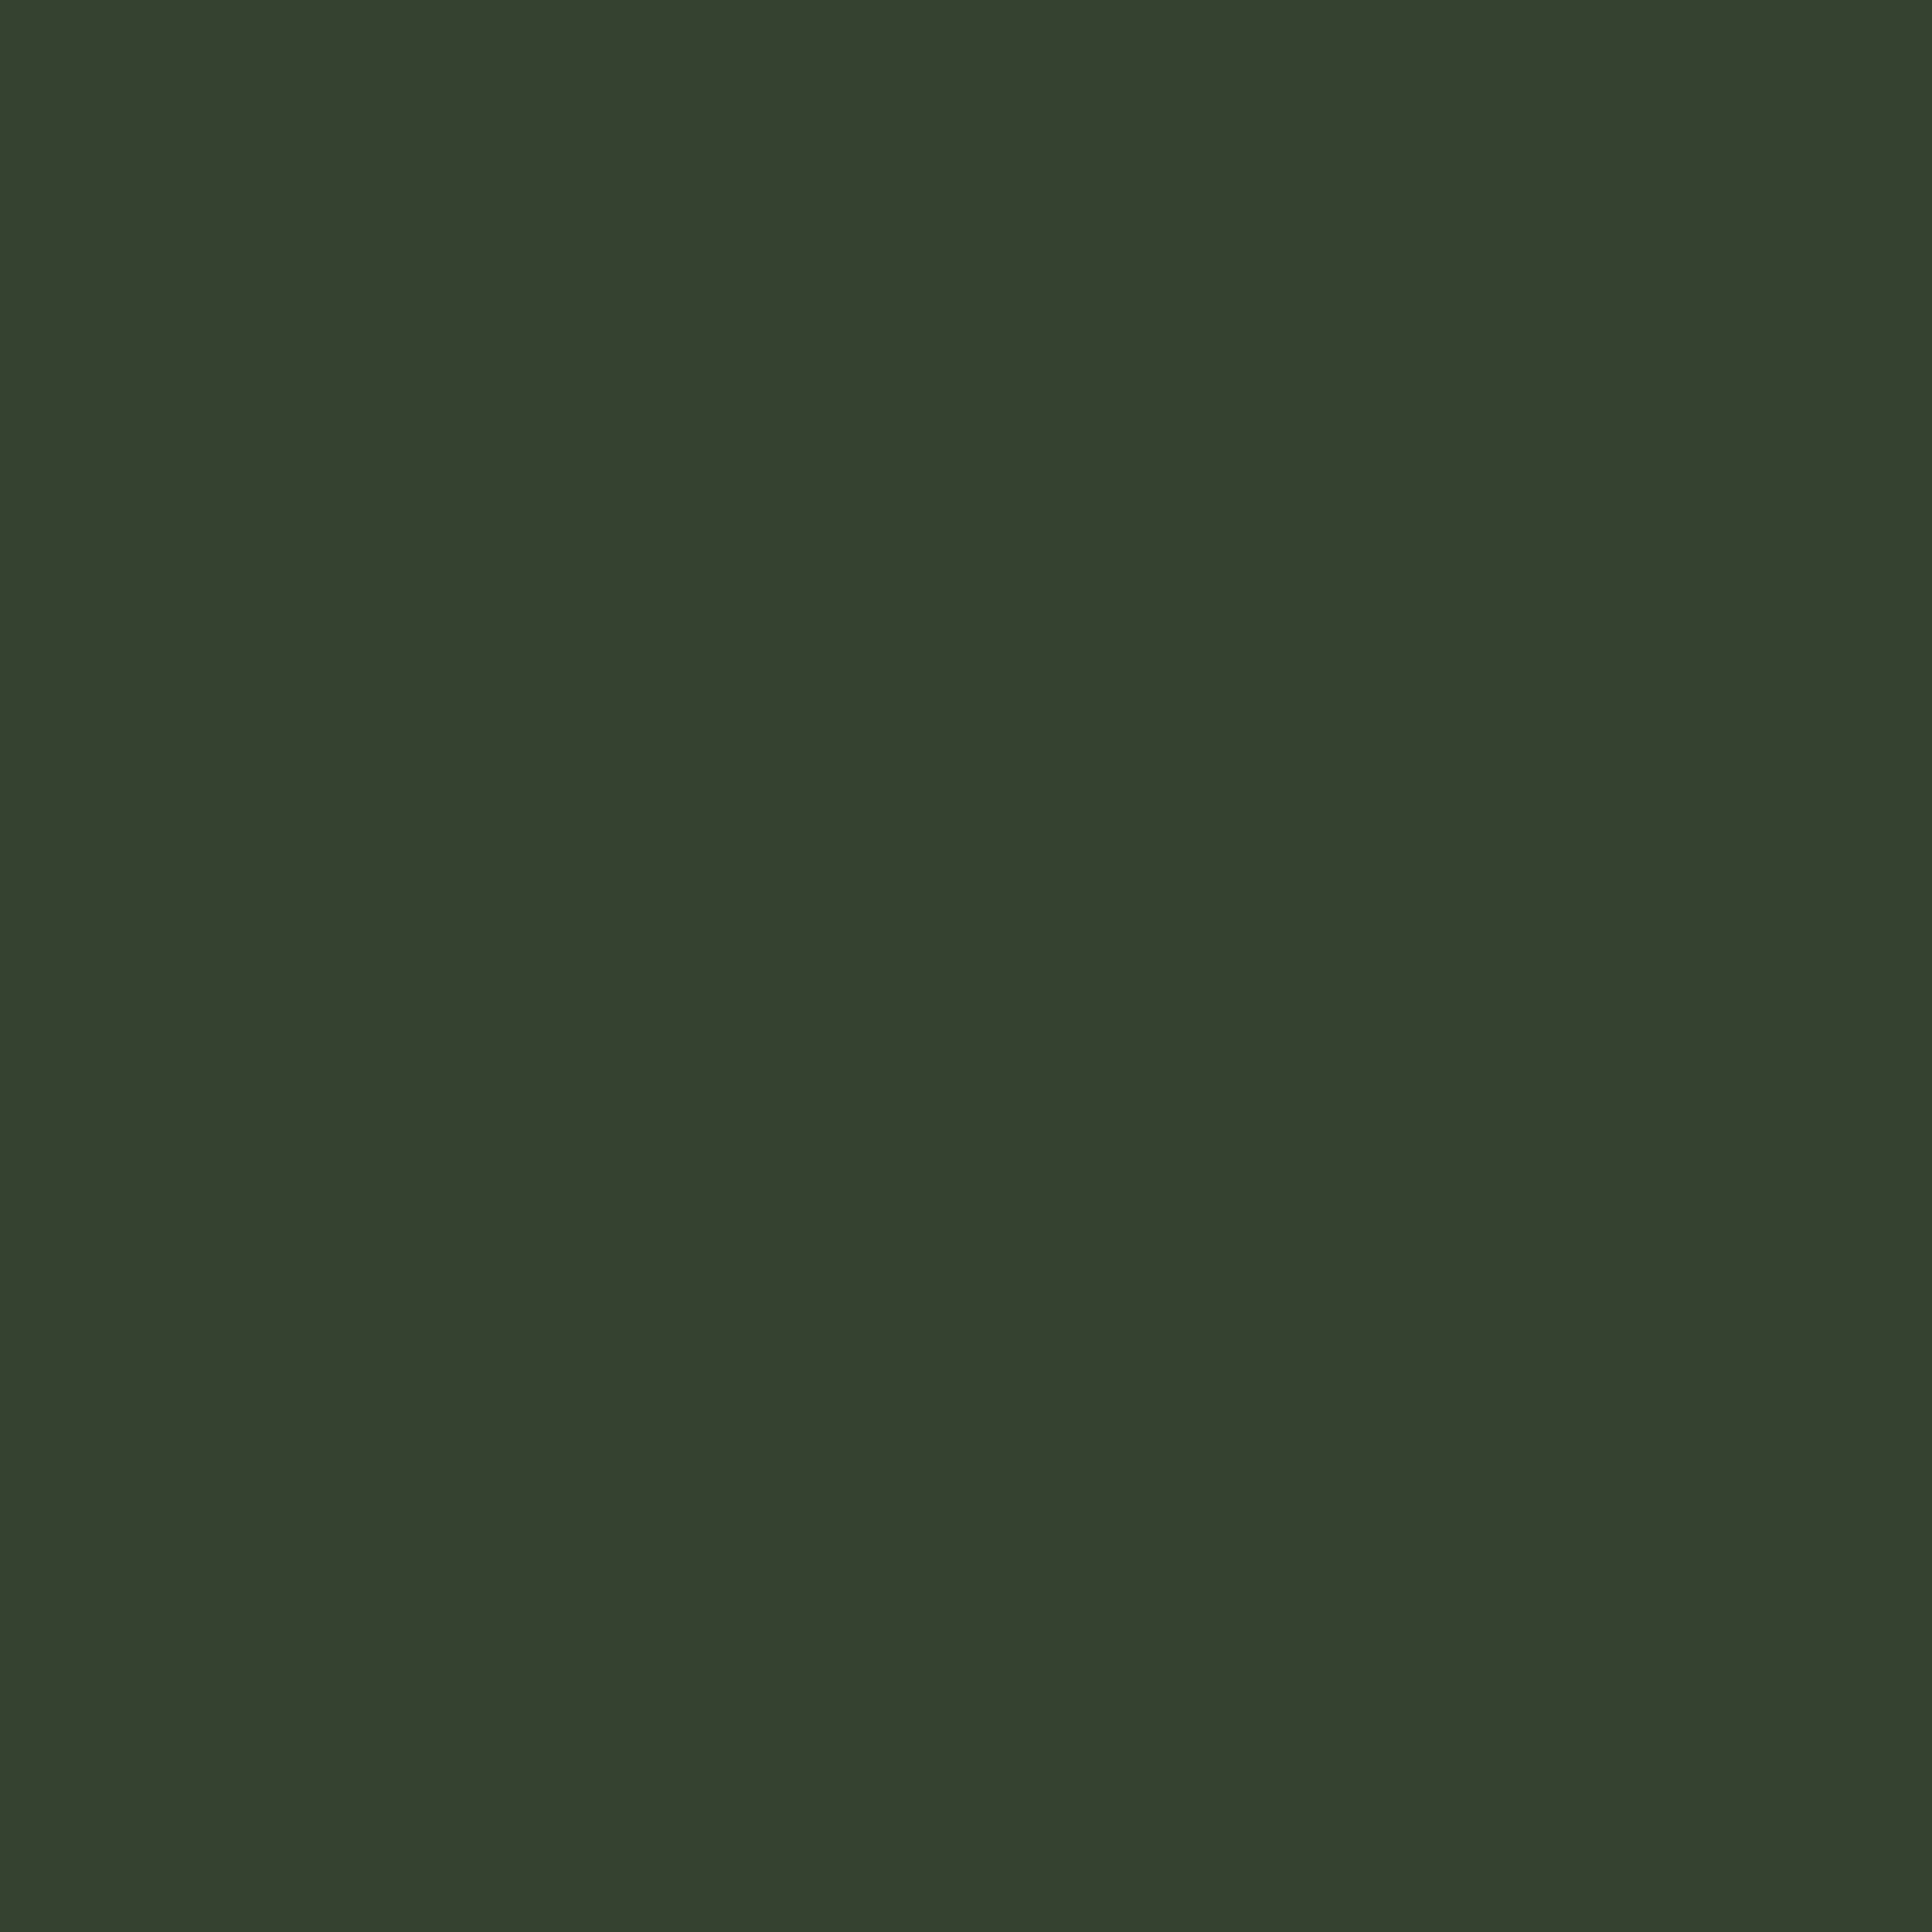 3600x3600 Kombu Green Solid Color Background